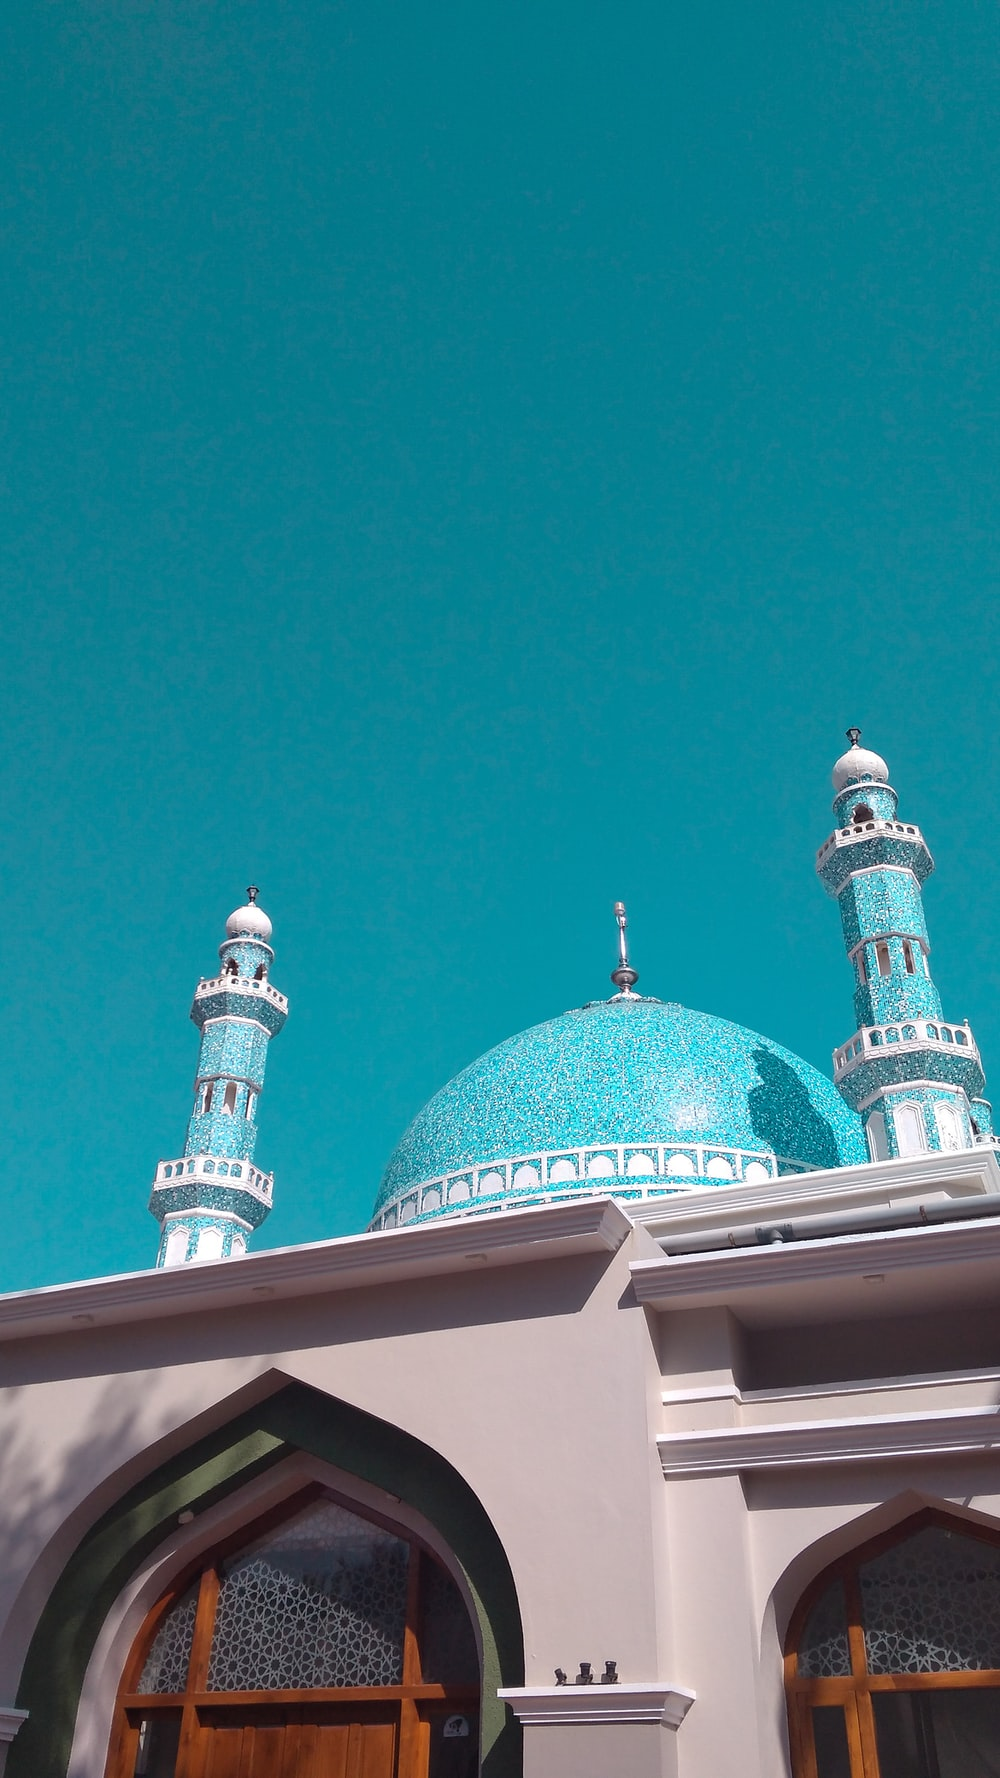 teal and white mosque